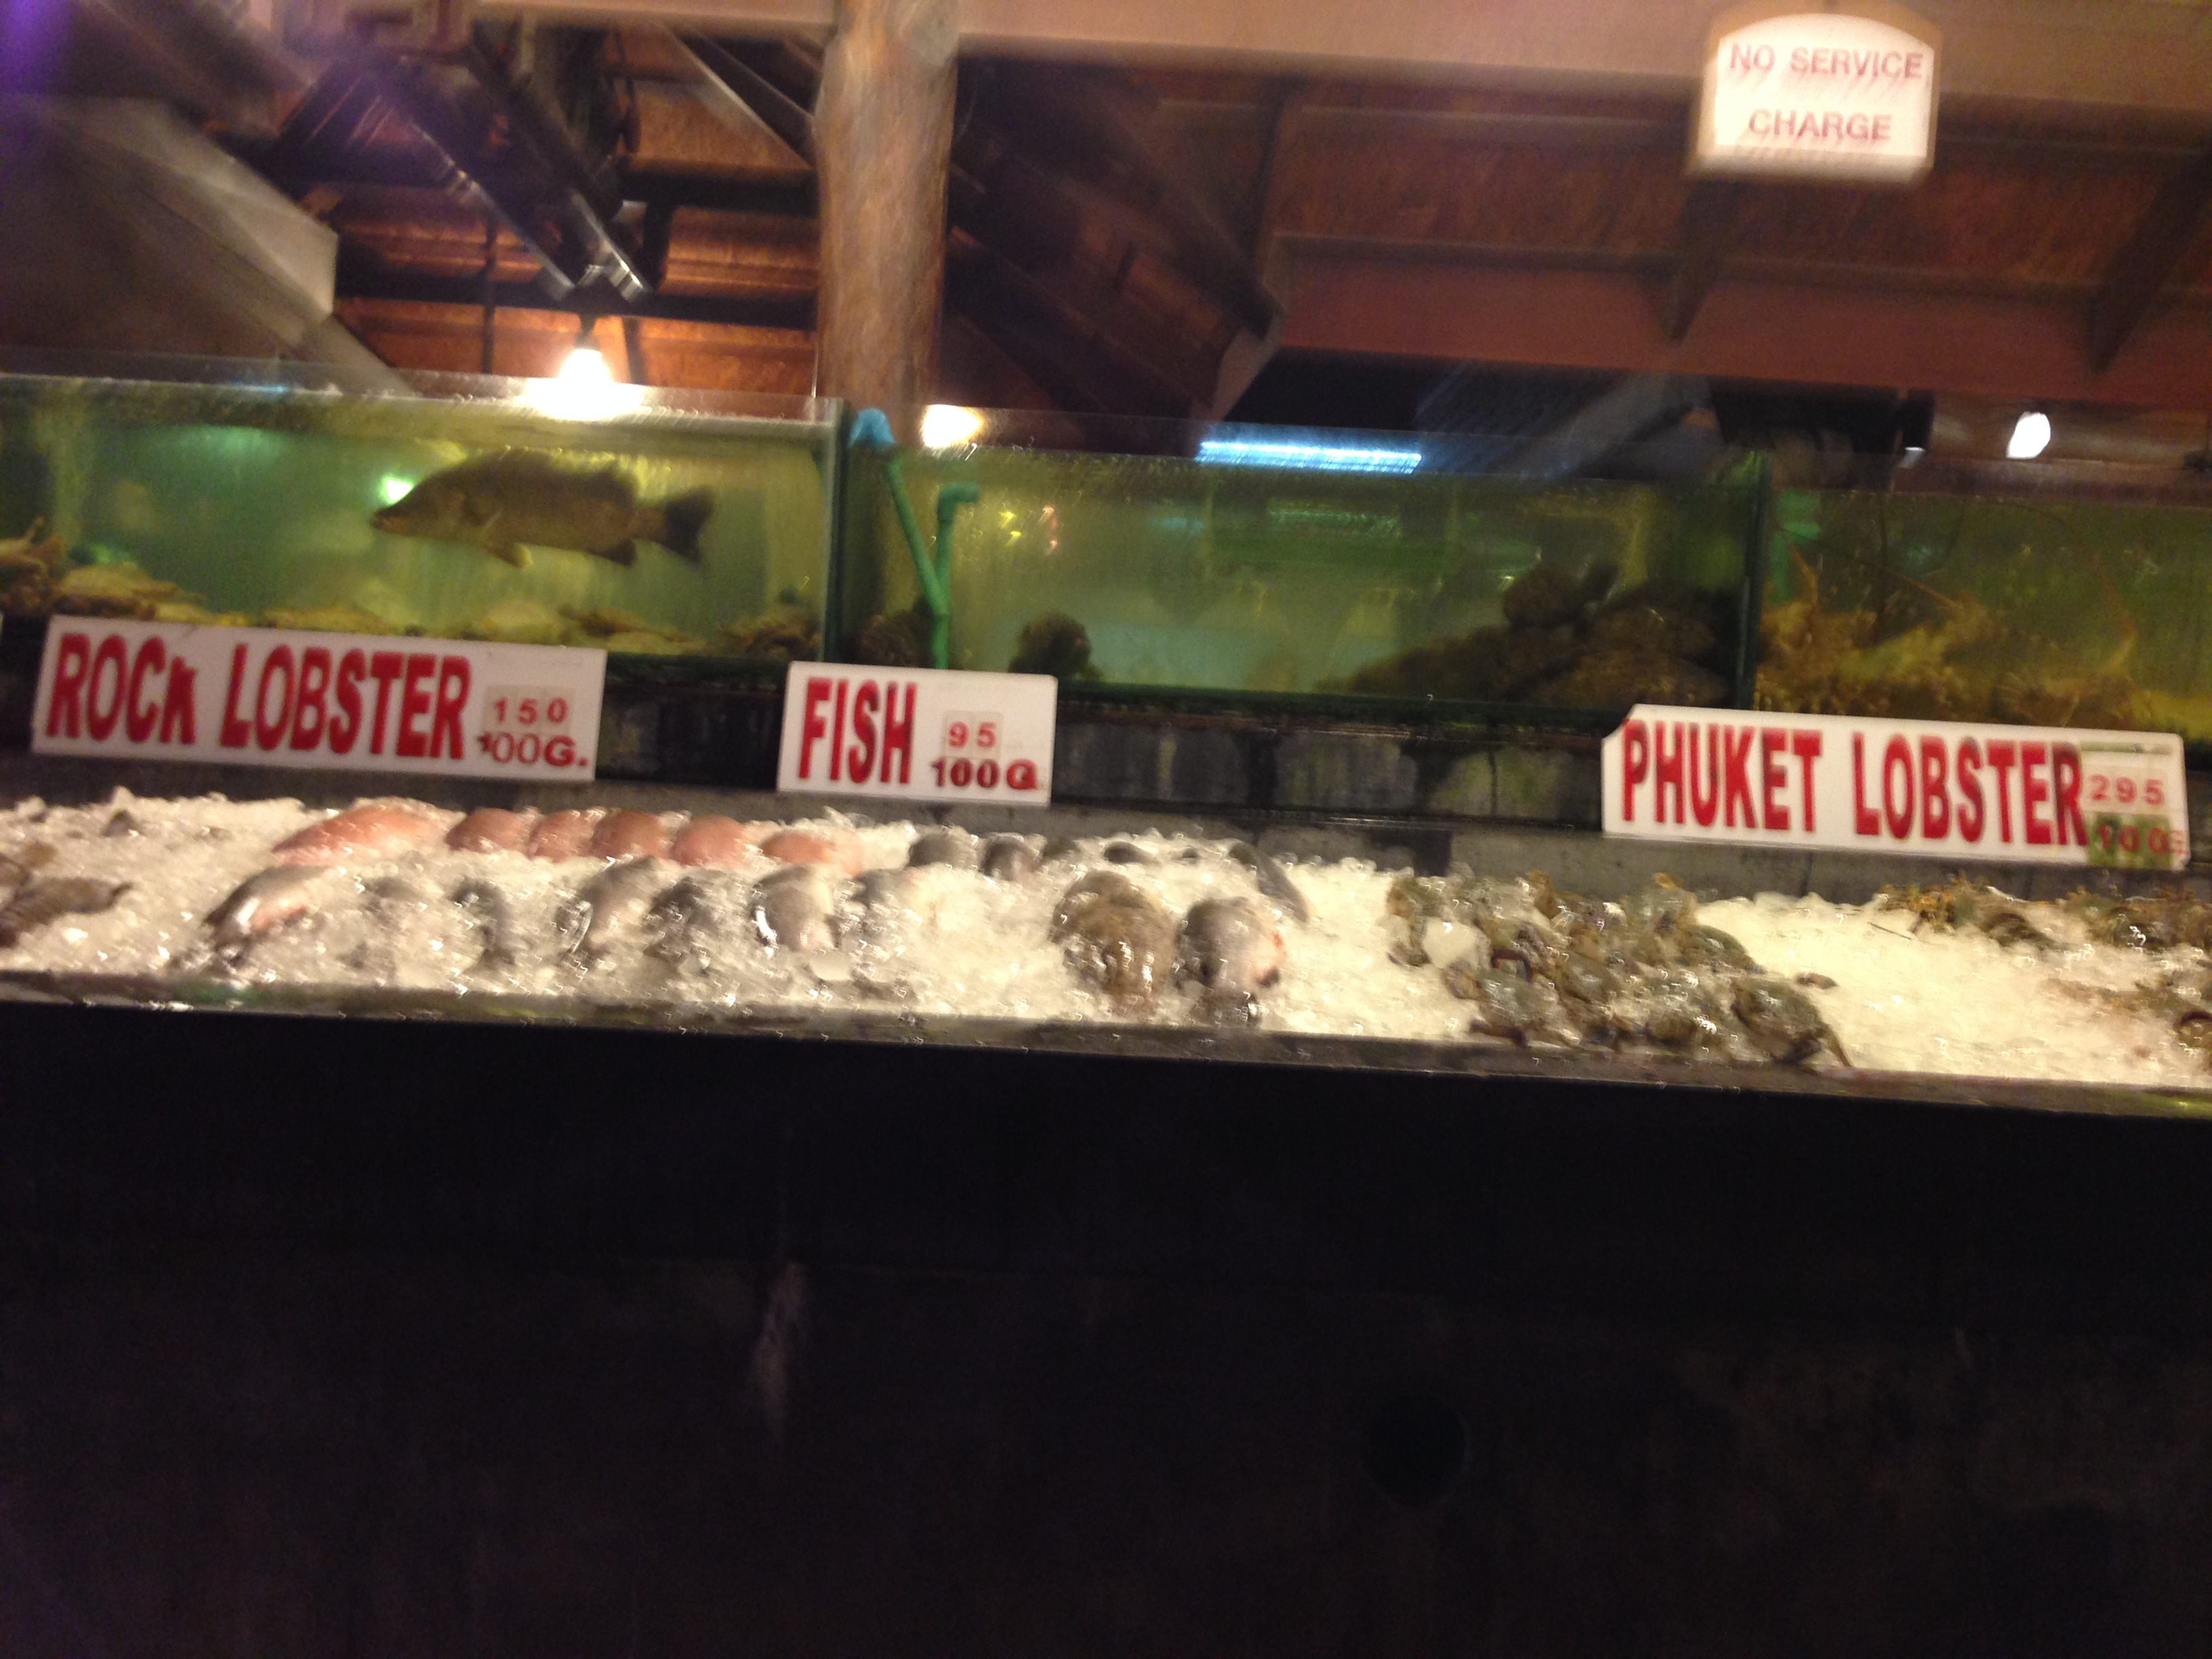 """The front of a seafood restaurant in Phuket. Seafood displayed on ice. The signs say """"rock lobster,"""" """"fish"""" and """"phuket lobster."""" A water tank with large fish is visible behind the seafood display."""